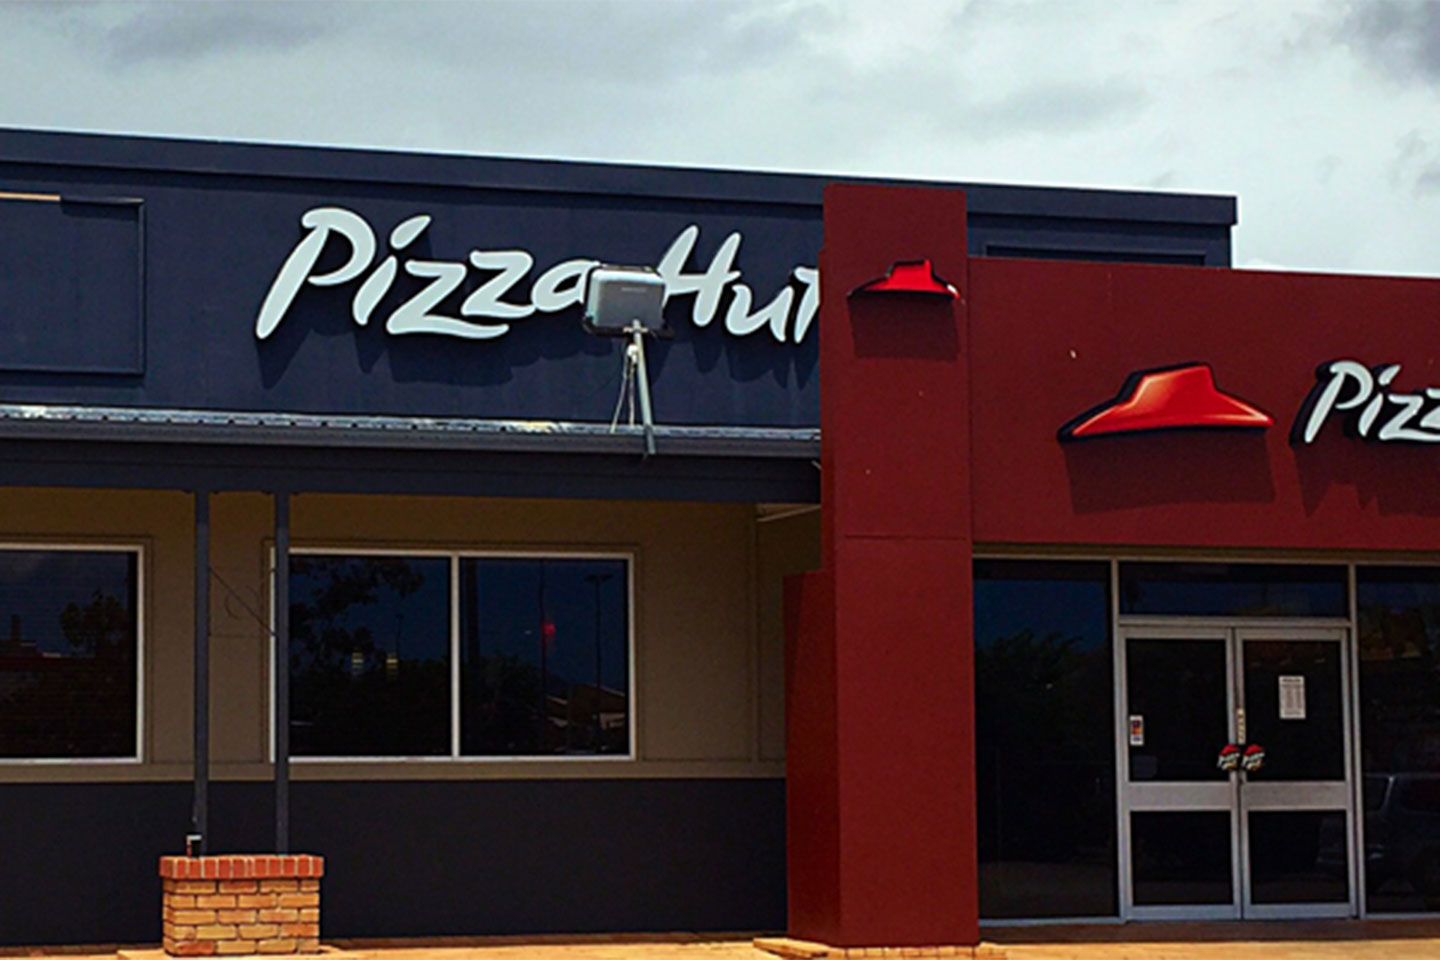 pizza hut departmentalization A way to control the flow of decisions and information in an organization, chain of command may not work in today's fast-changing, lean organizations.